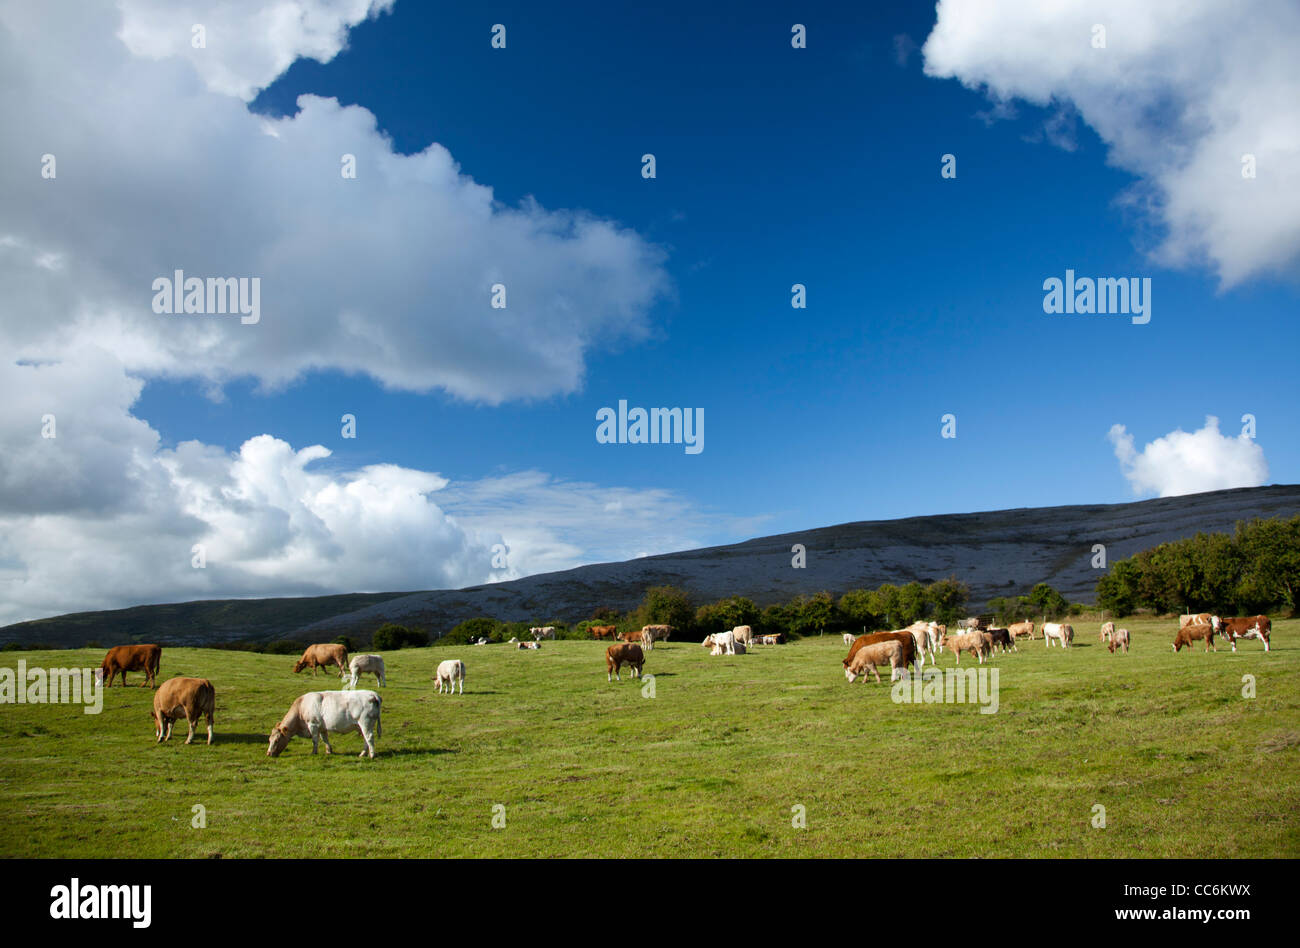 Cattle grazing in a field, The Burren, County Clare, Ireland. - Stock Image